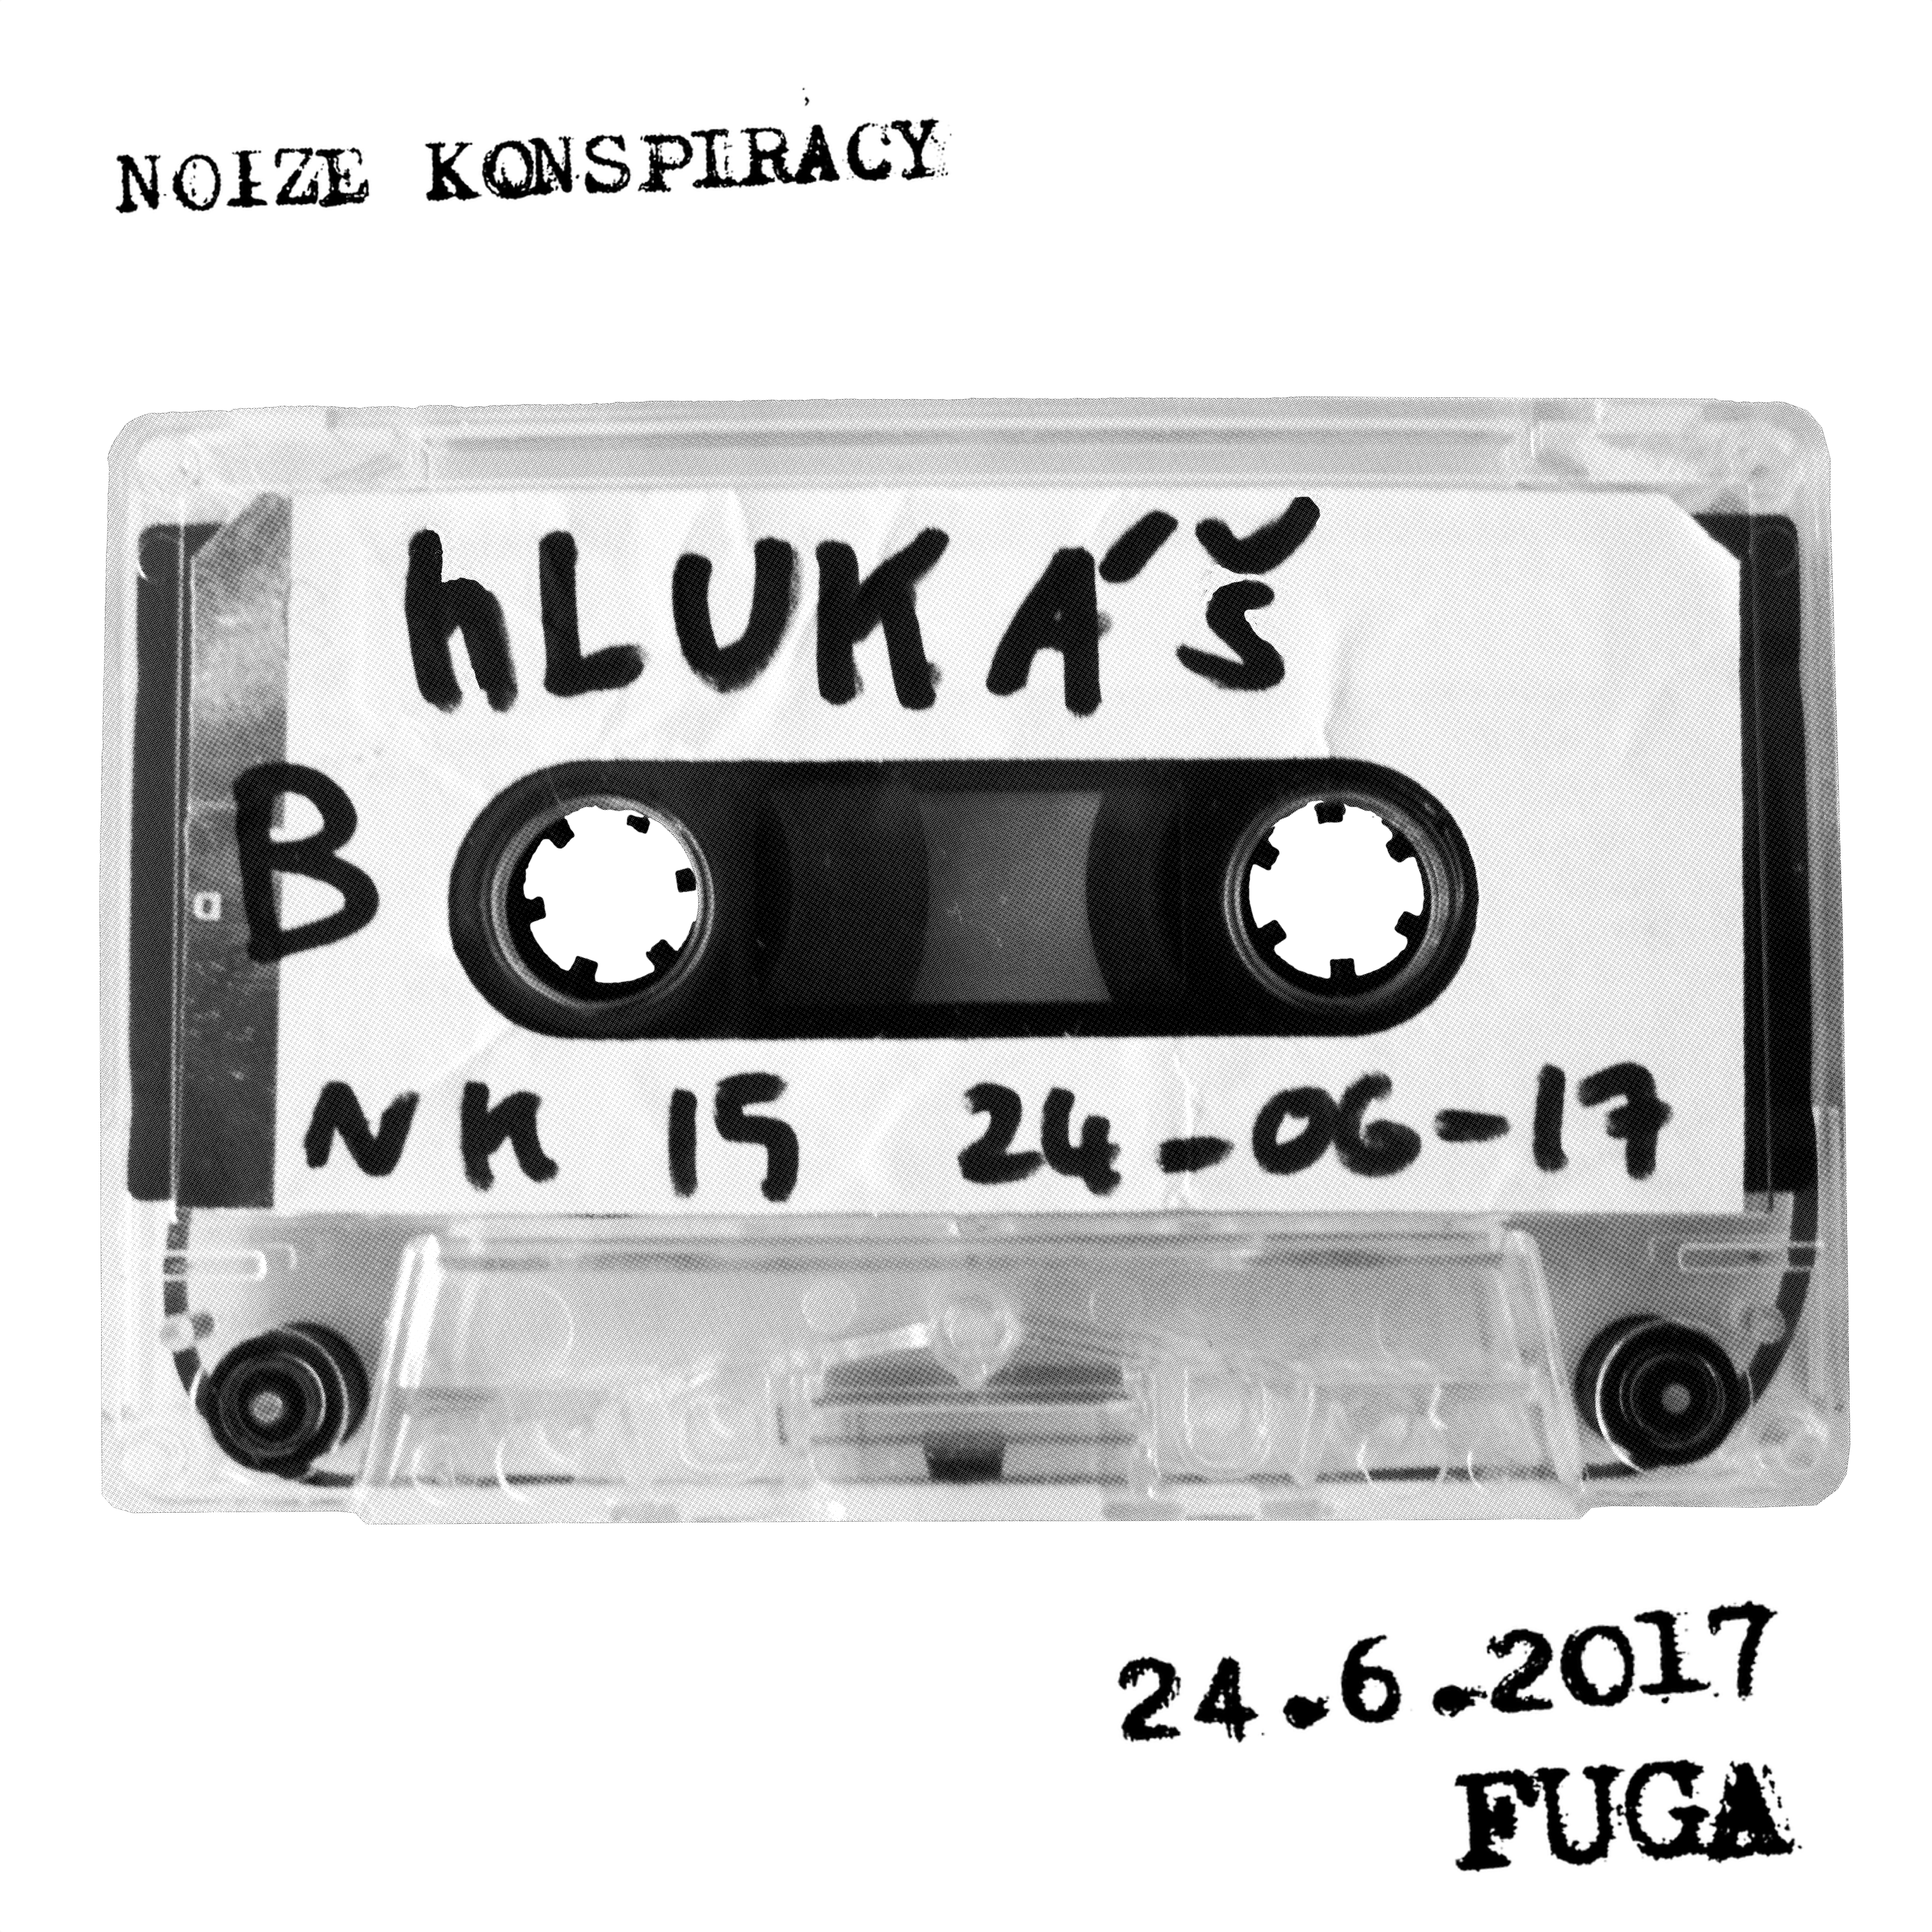 NK15_live_hlukas_BW.png